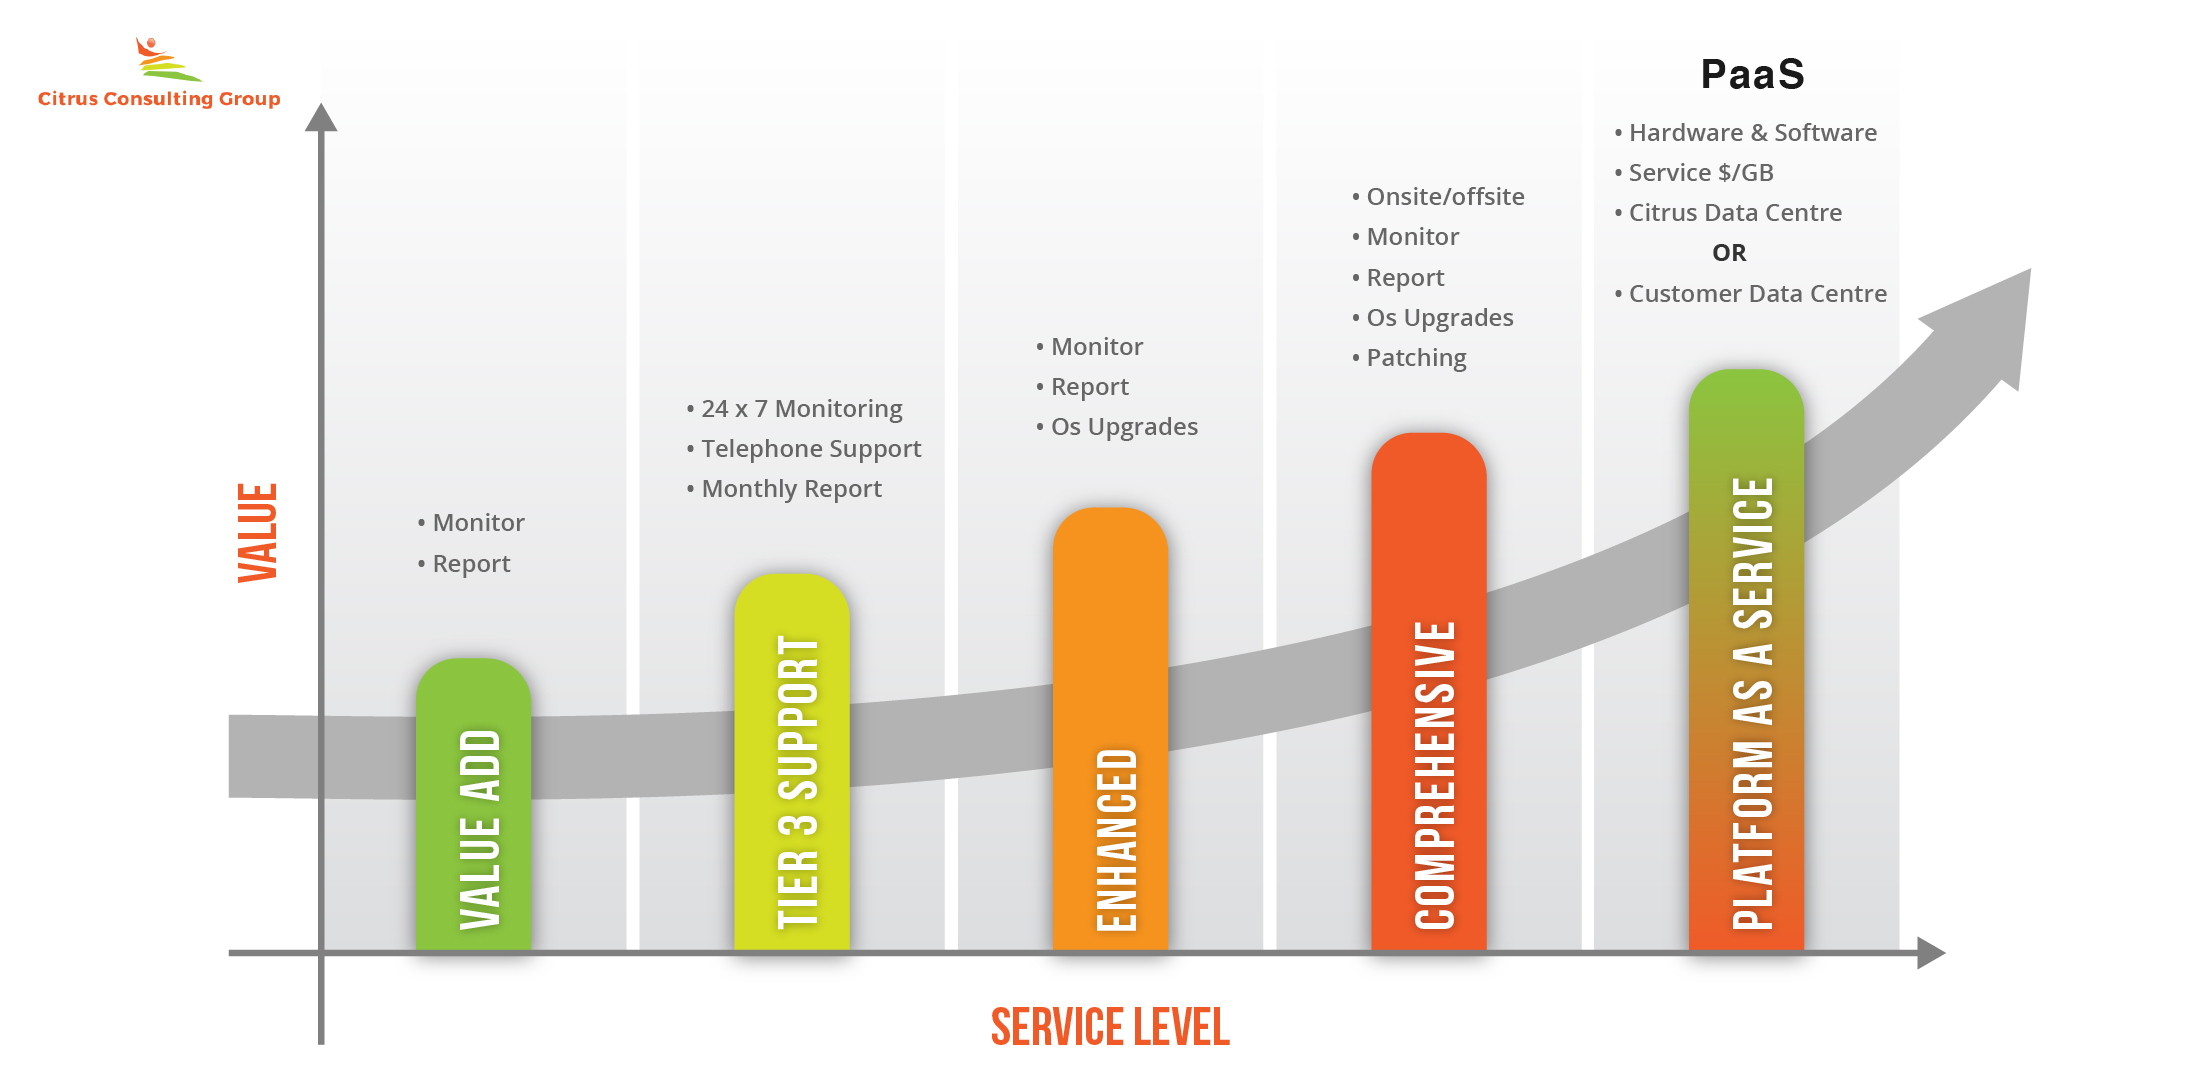 Citrus Consulting's Value-Service Level Graph